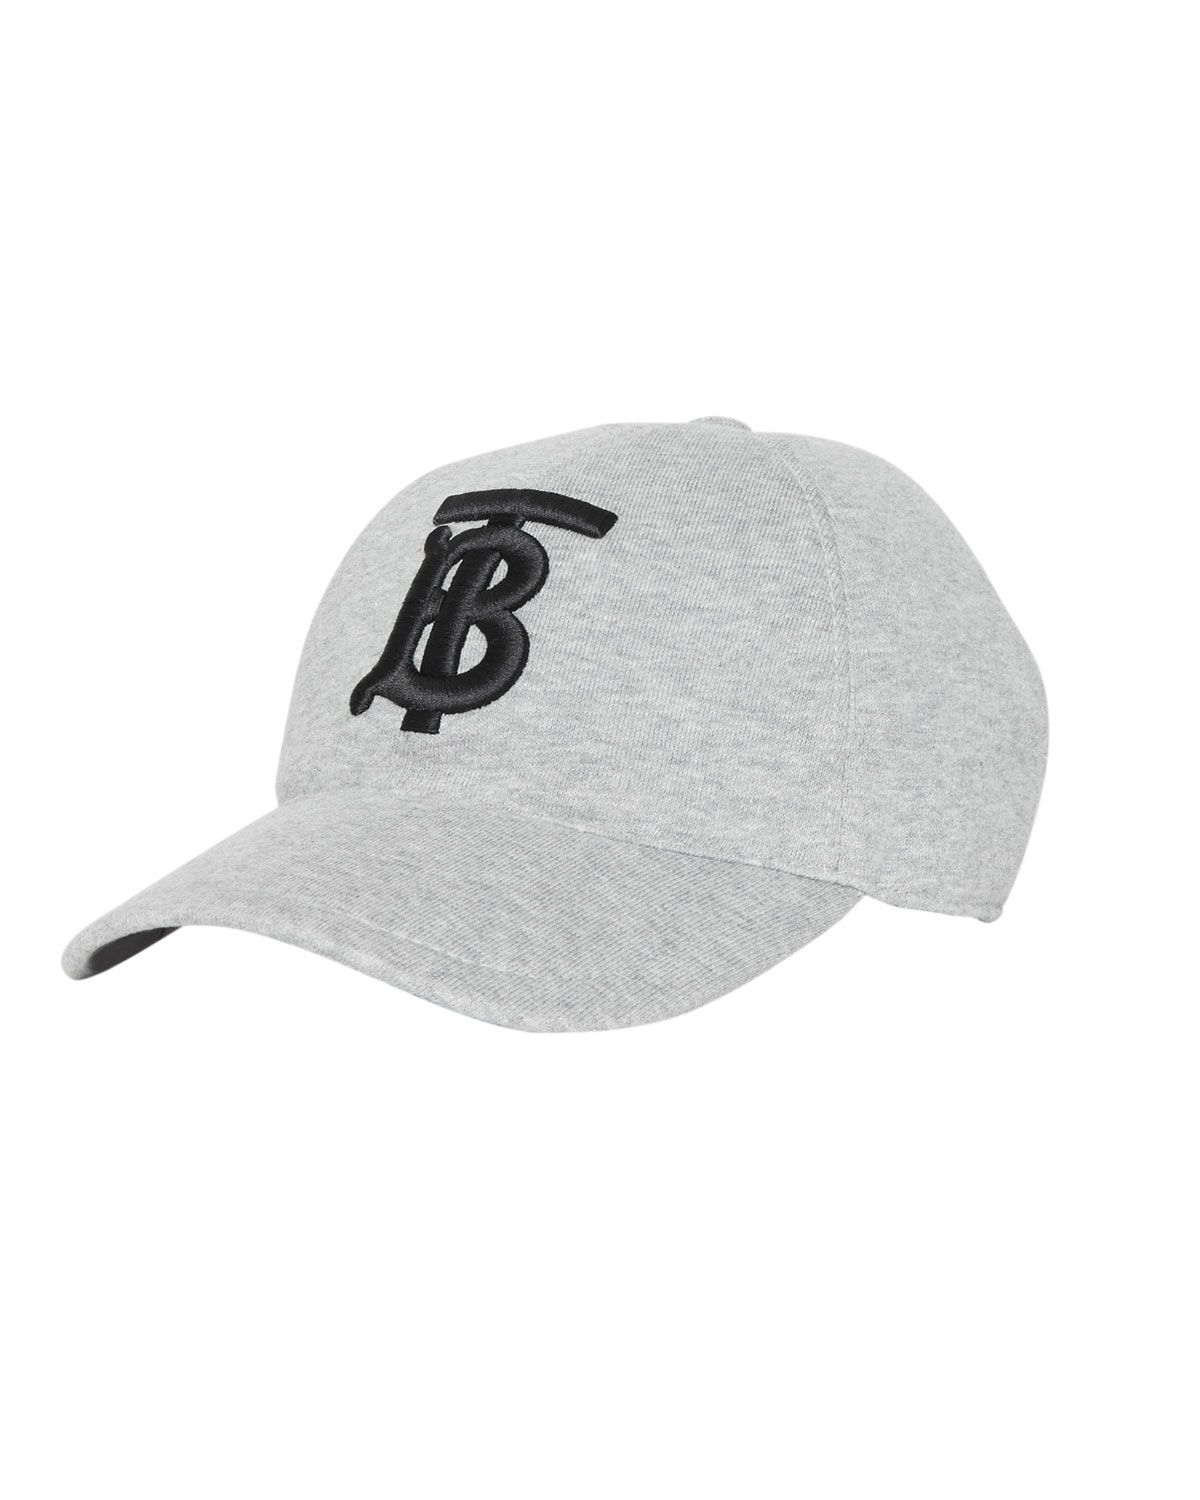 8986dfb6 BURBERRY MEN'S TB JERSEY BASEBALL CAP, GRAY. #burberry | Burberry in ...